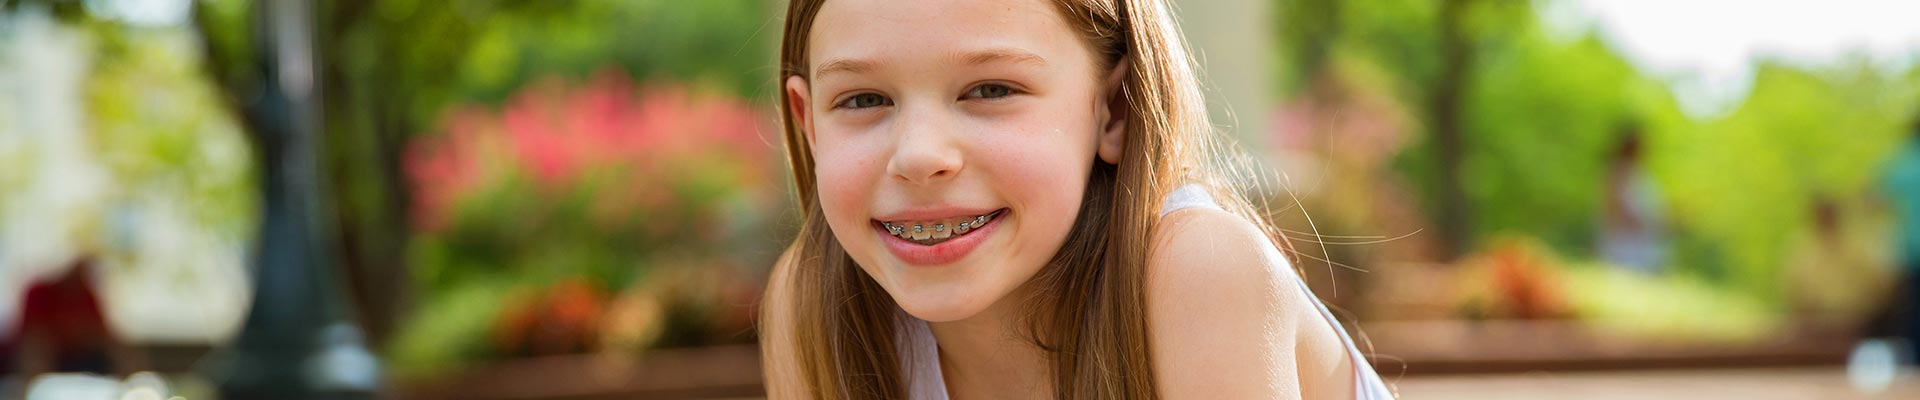 Early Treatment Southern Maine Orthodontics in Scarborough, ME